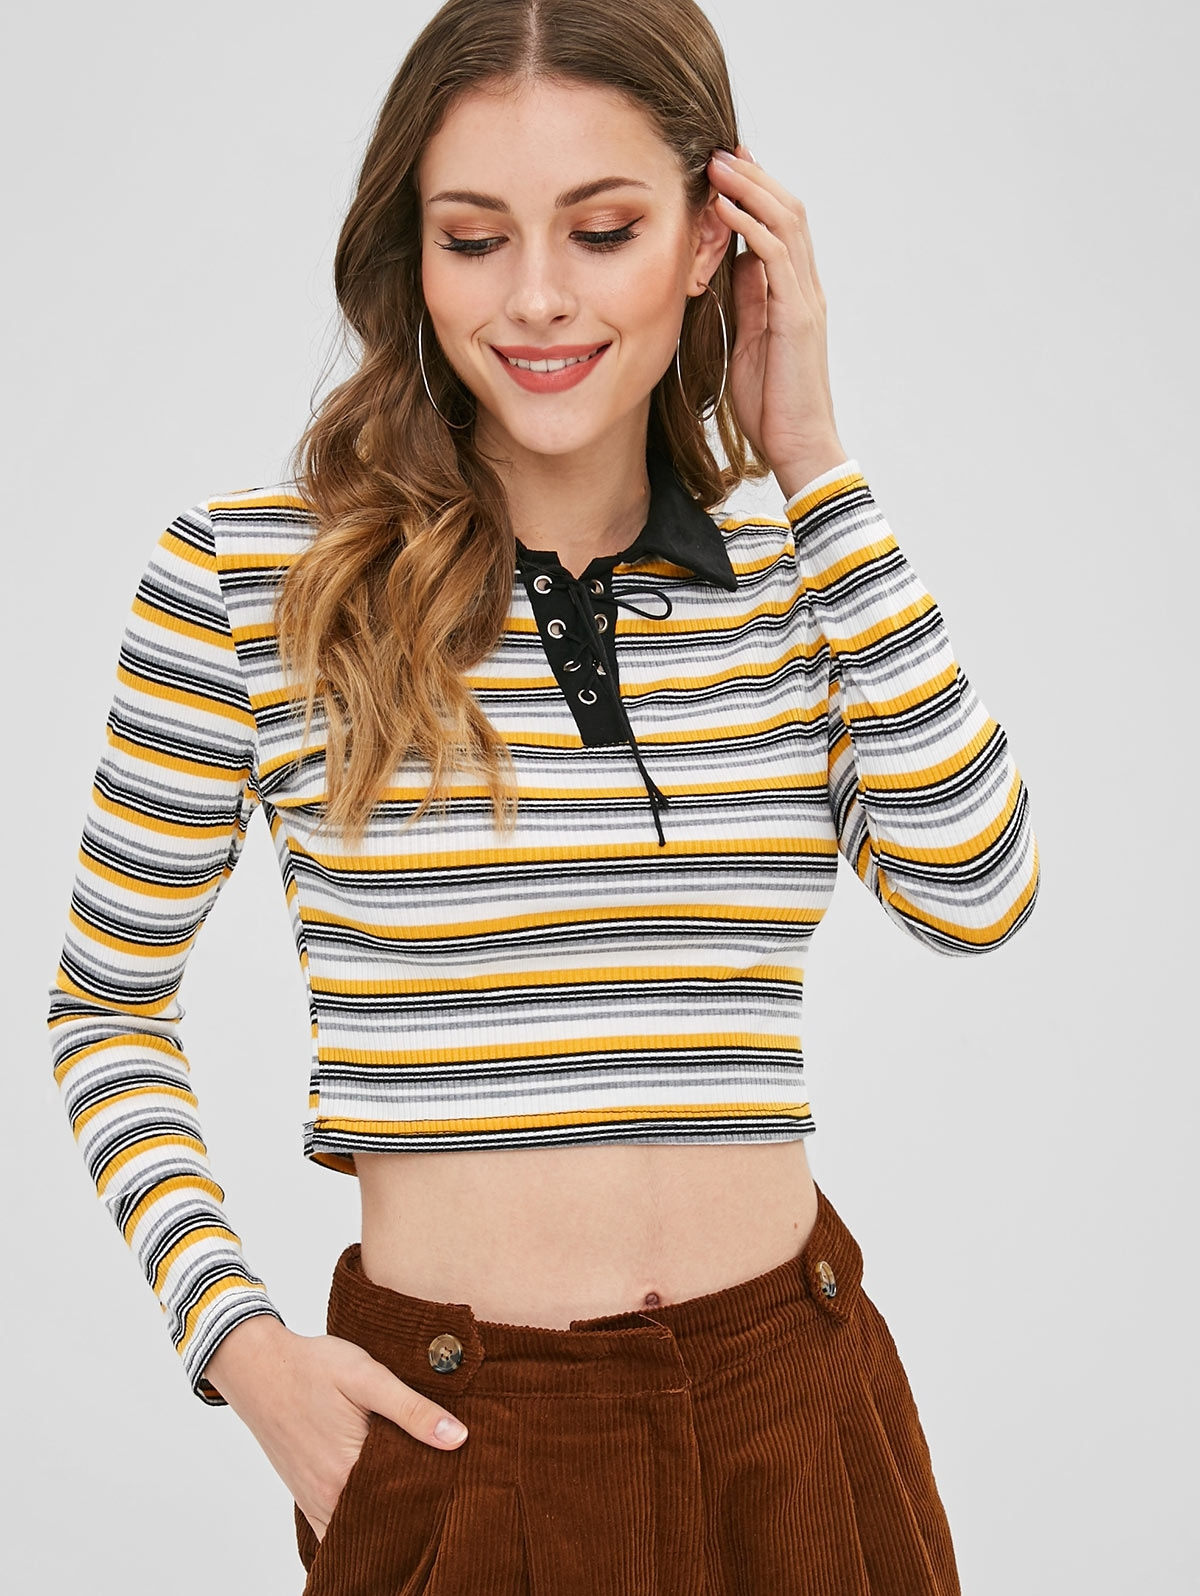 Lace Up Striped Crop Tee